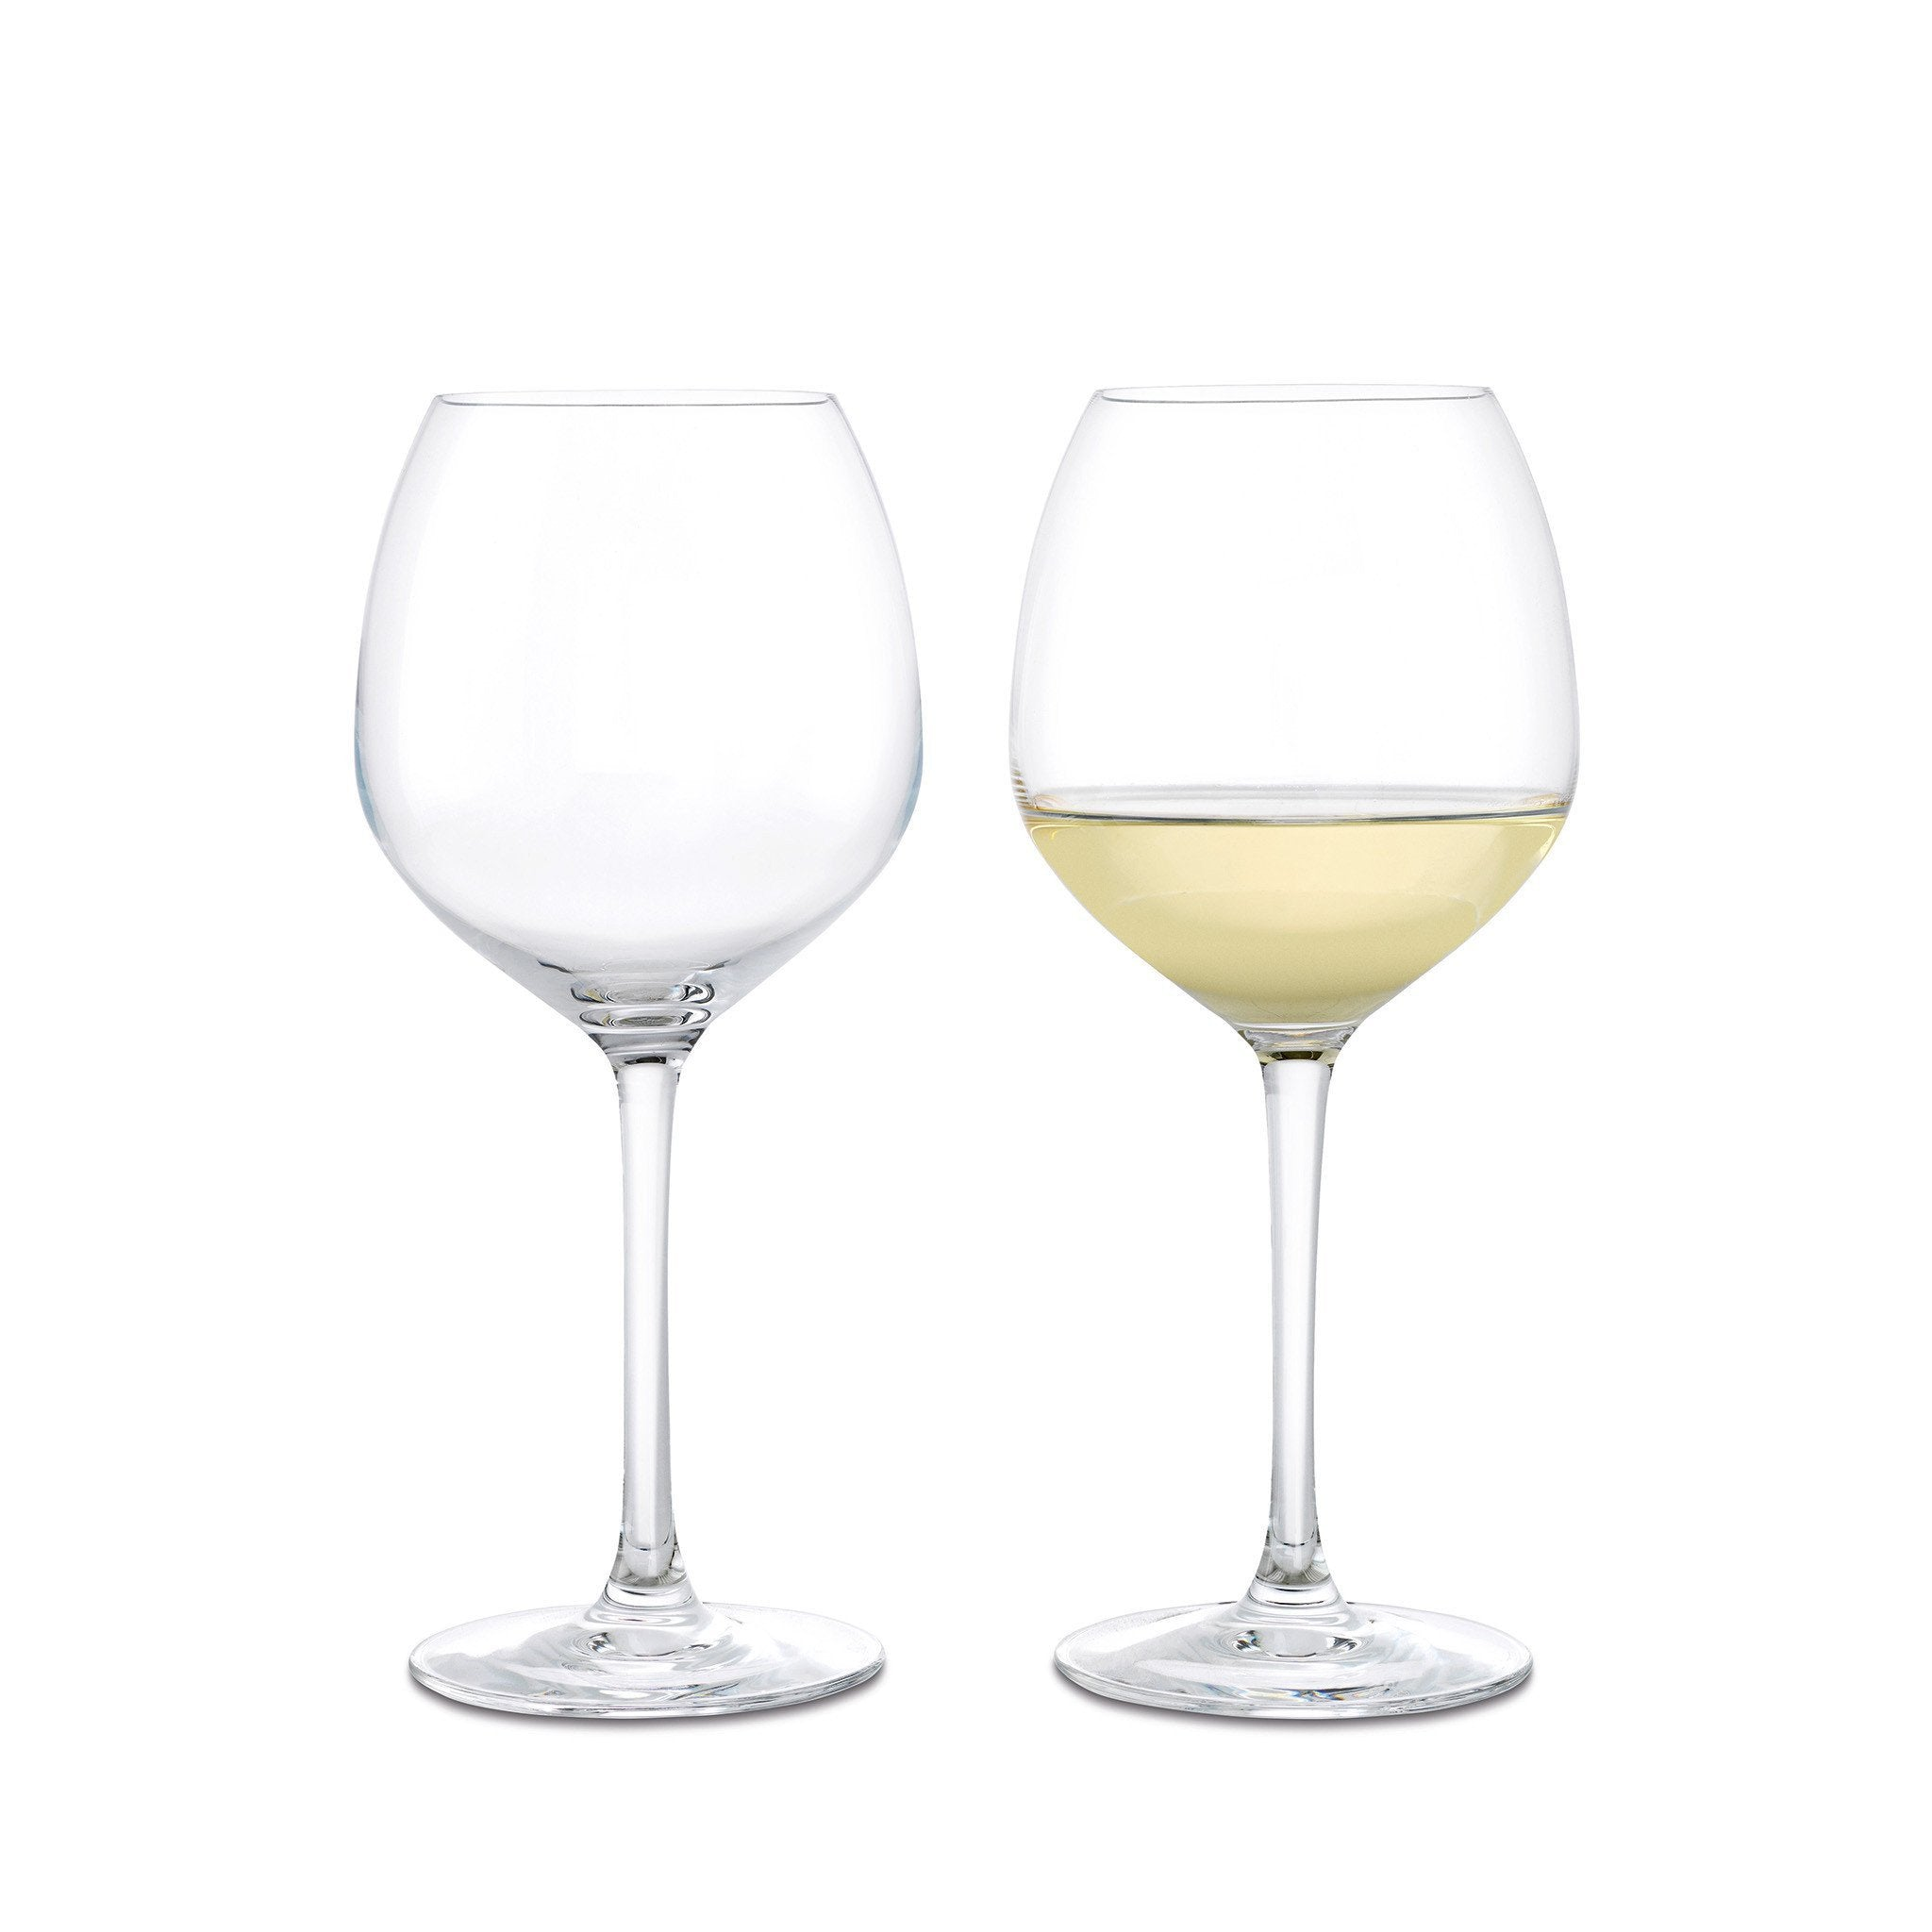 Premium White Wine Glass, 2 Pcs.